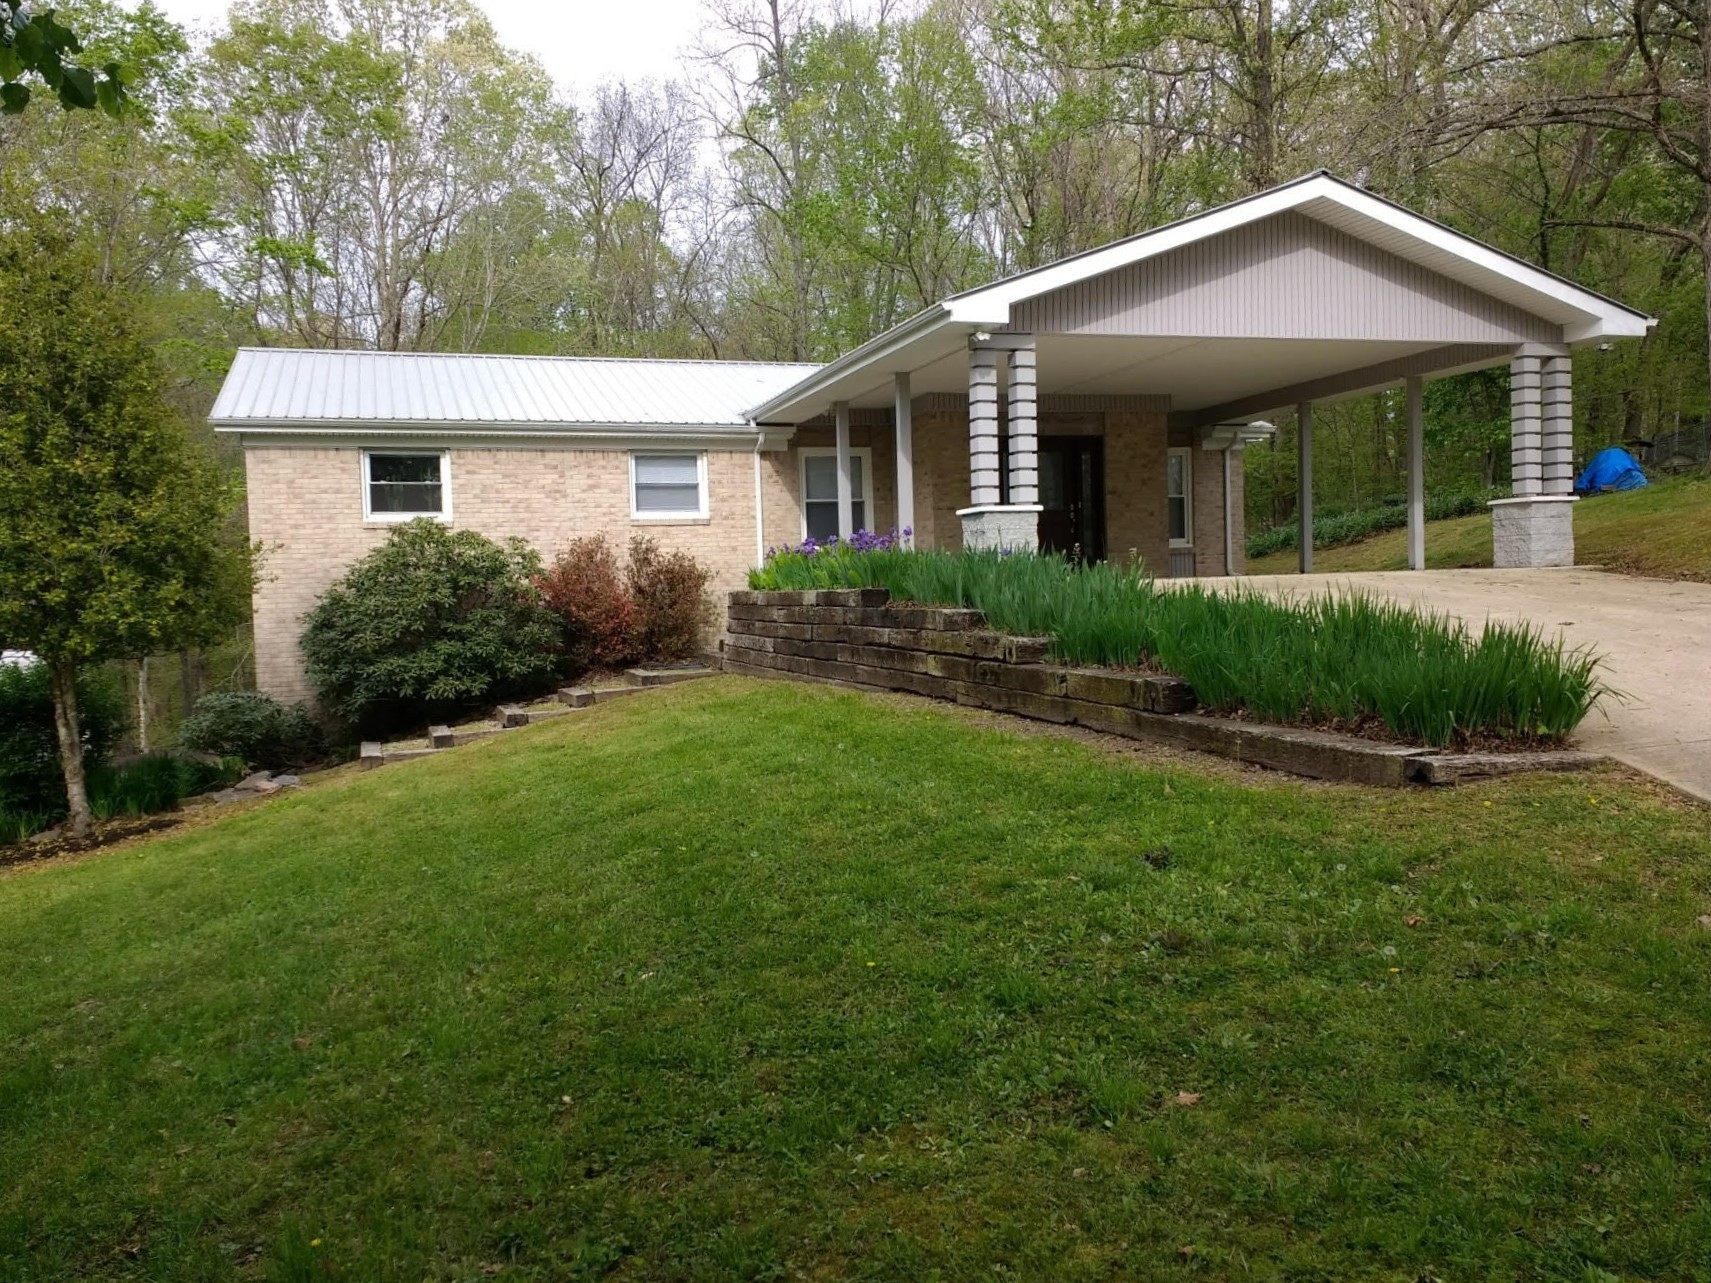 904 Shady Cir Property Photo - Centerville, TN real estate listing